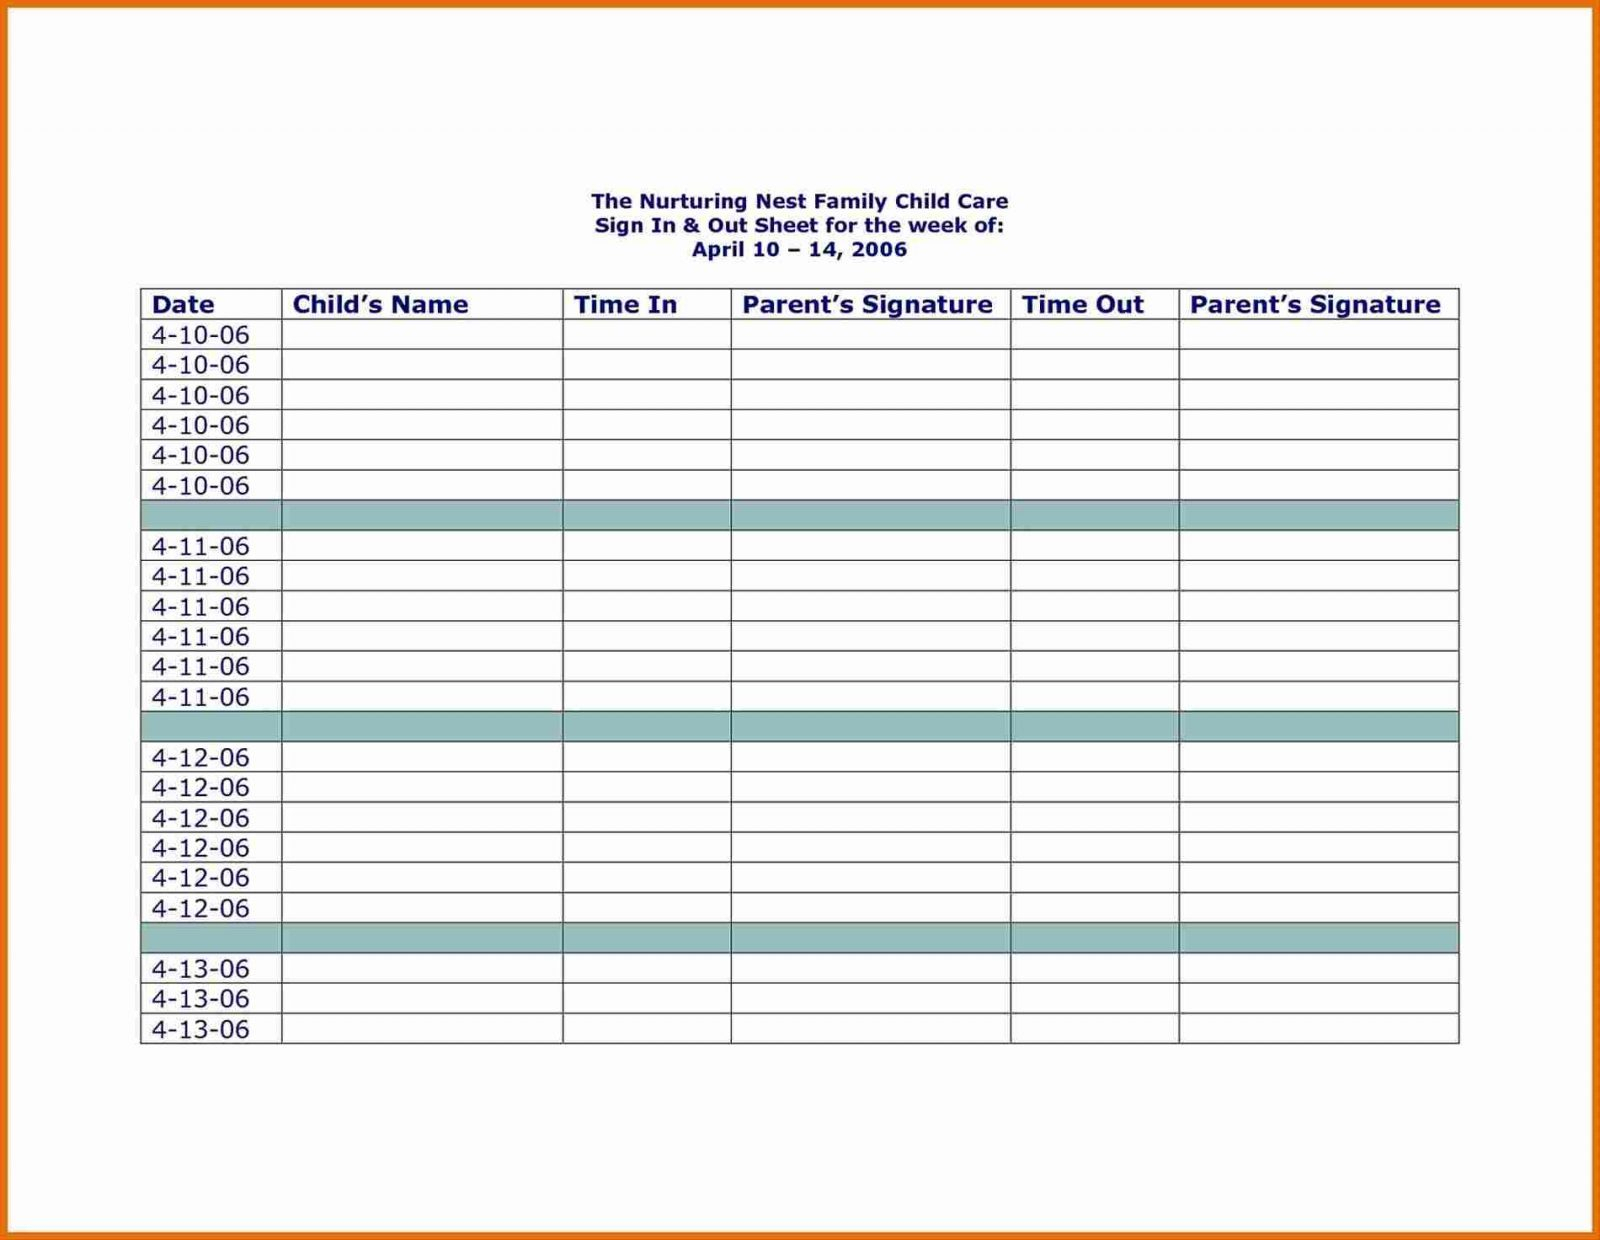 Daycare Payment Spreadsheet Template With Childcare Daycare  Neighborhood Opposition To Childcare Illustrates